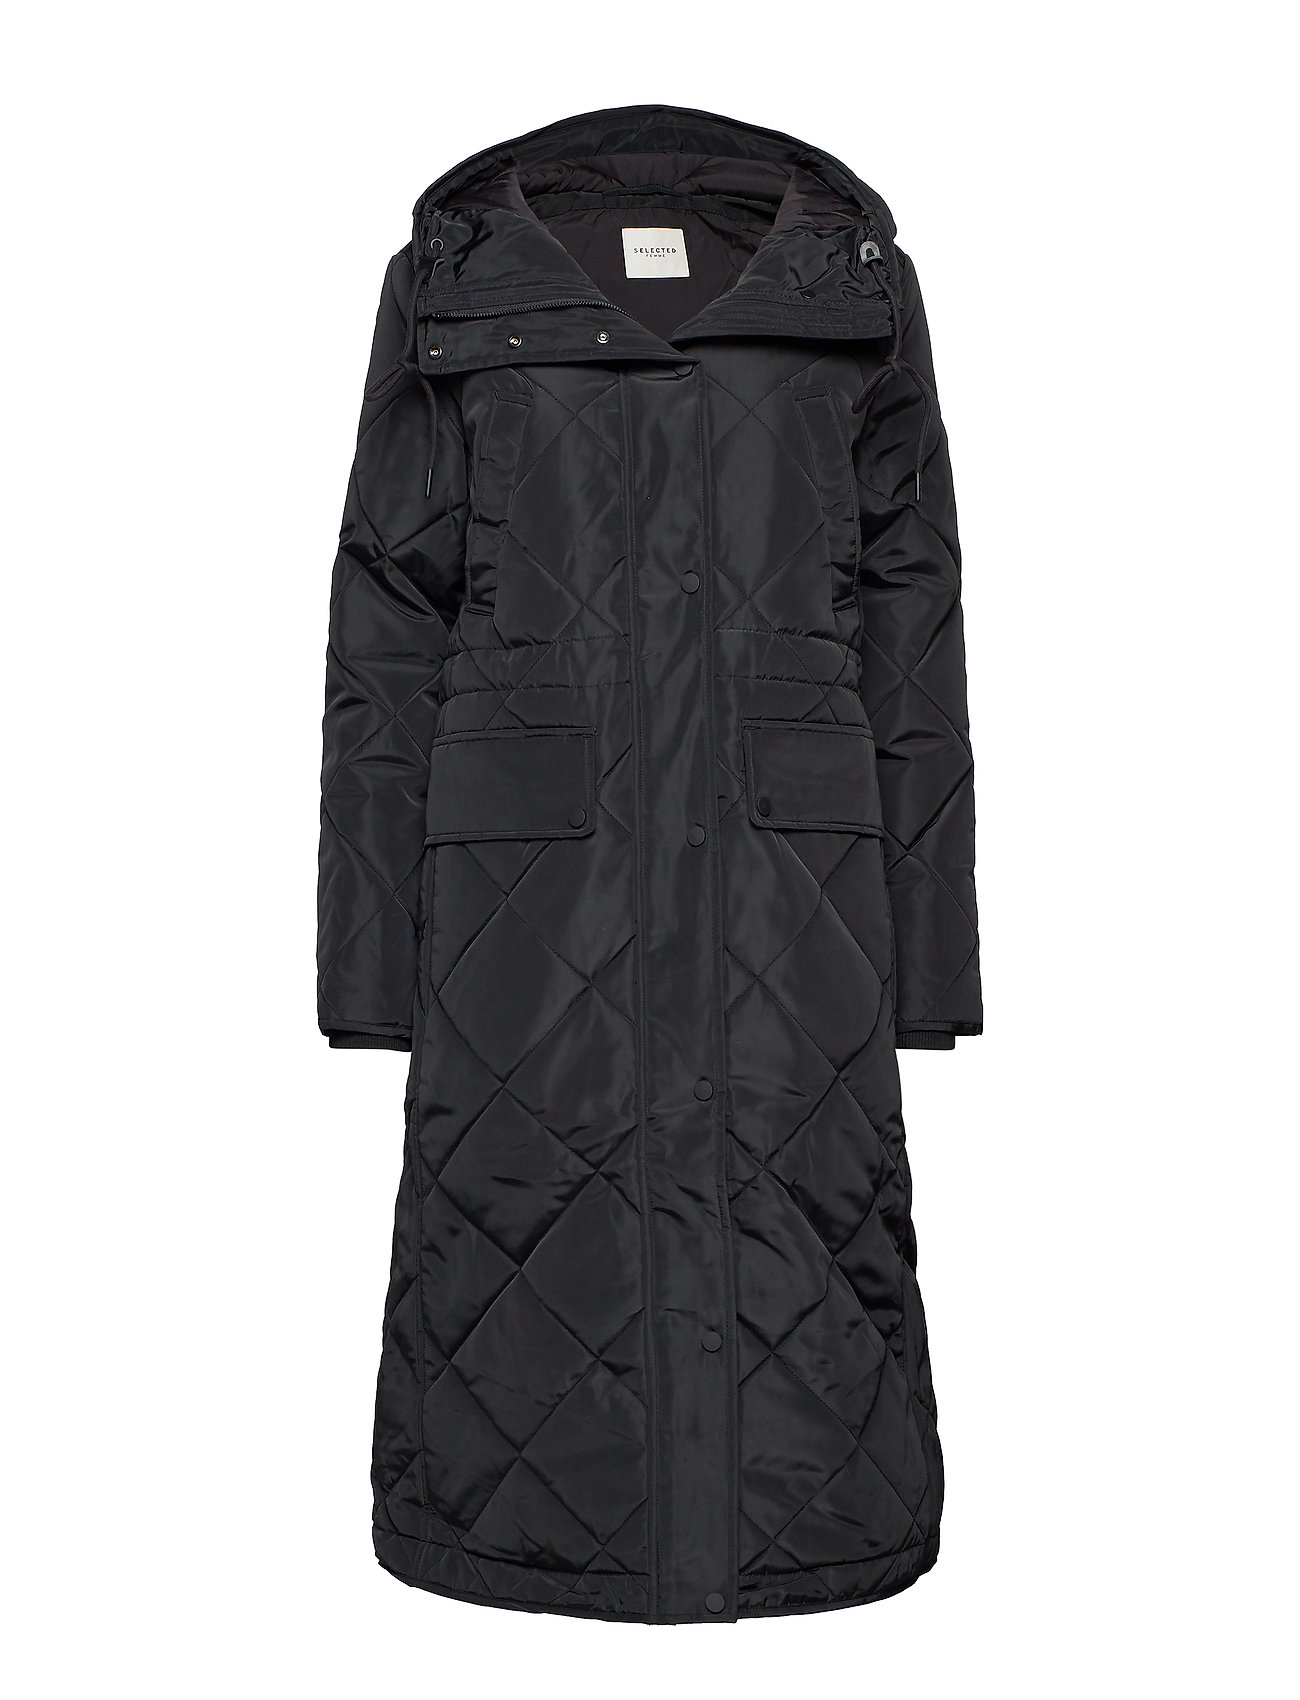 Selected Femme SLFHIMA COAT W - BLACK